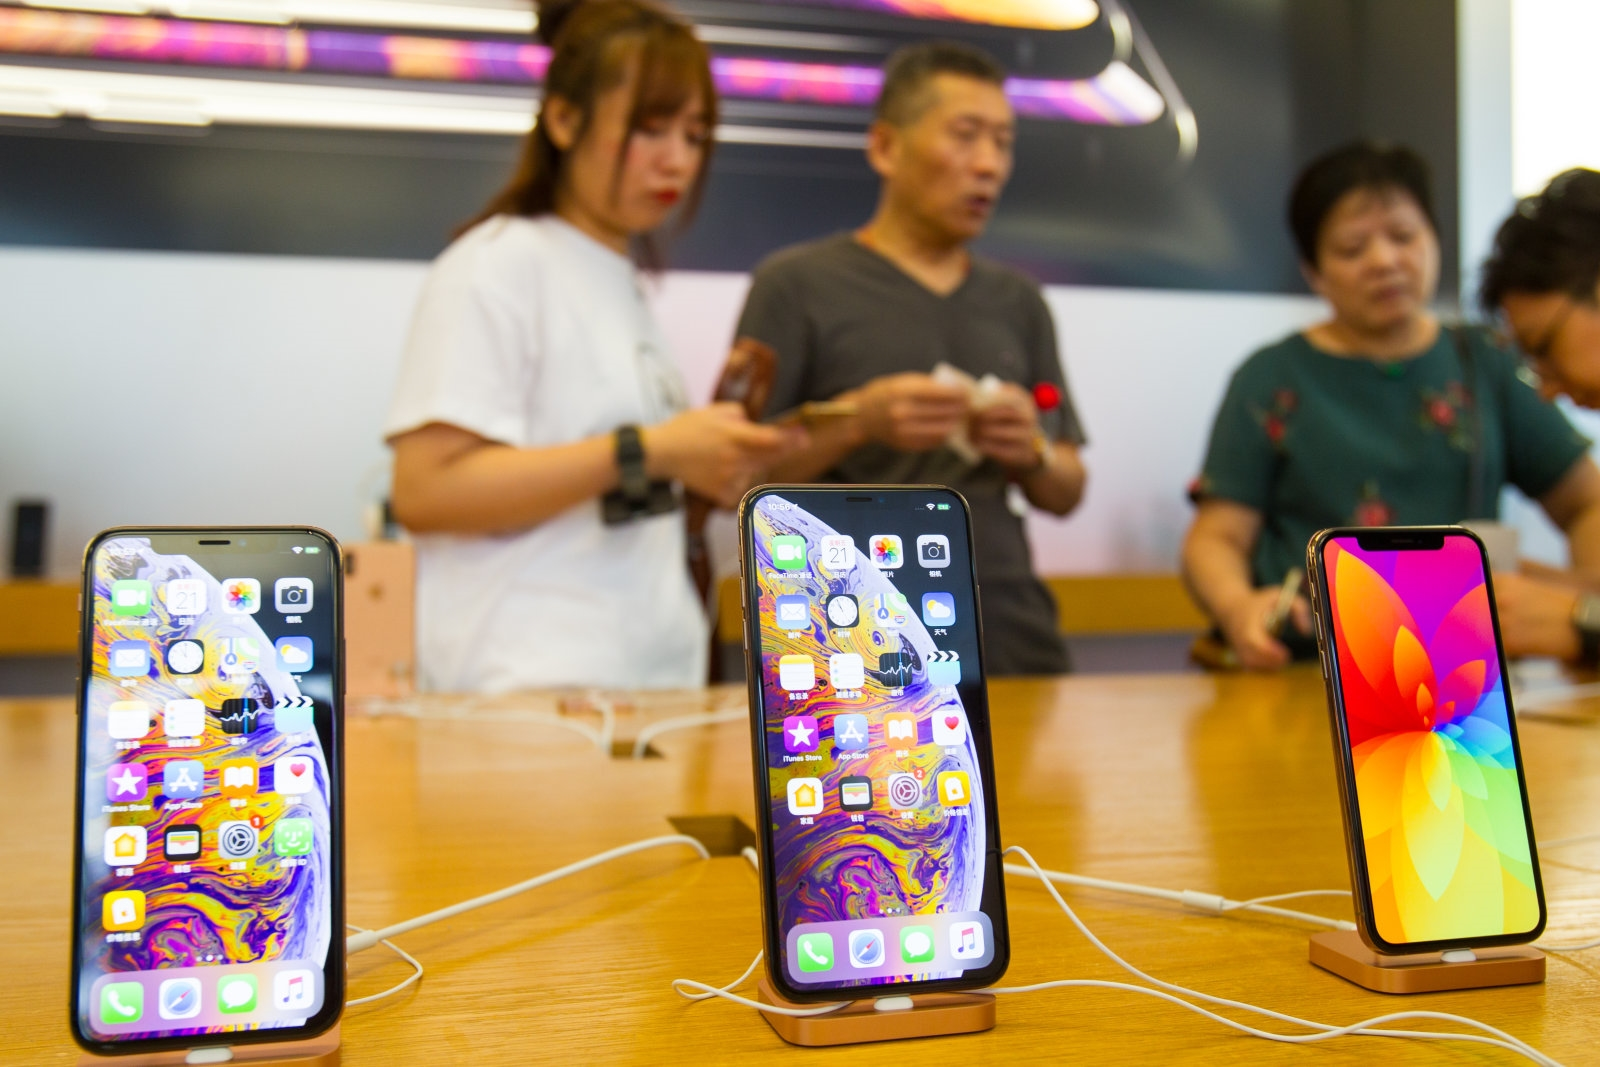 Apple blames China struggles and slow iPhone upgrades for earnings miss | DeviceDaily.com